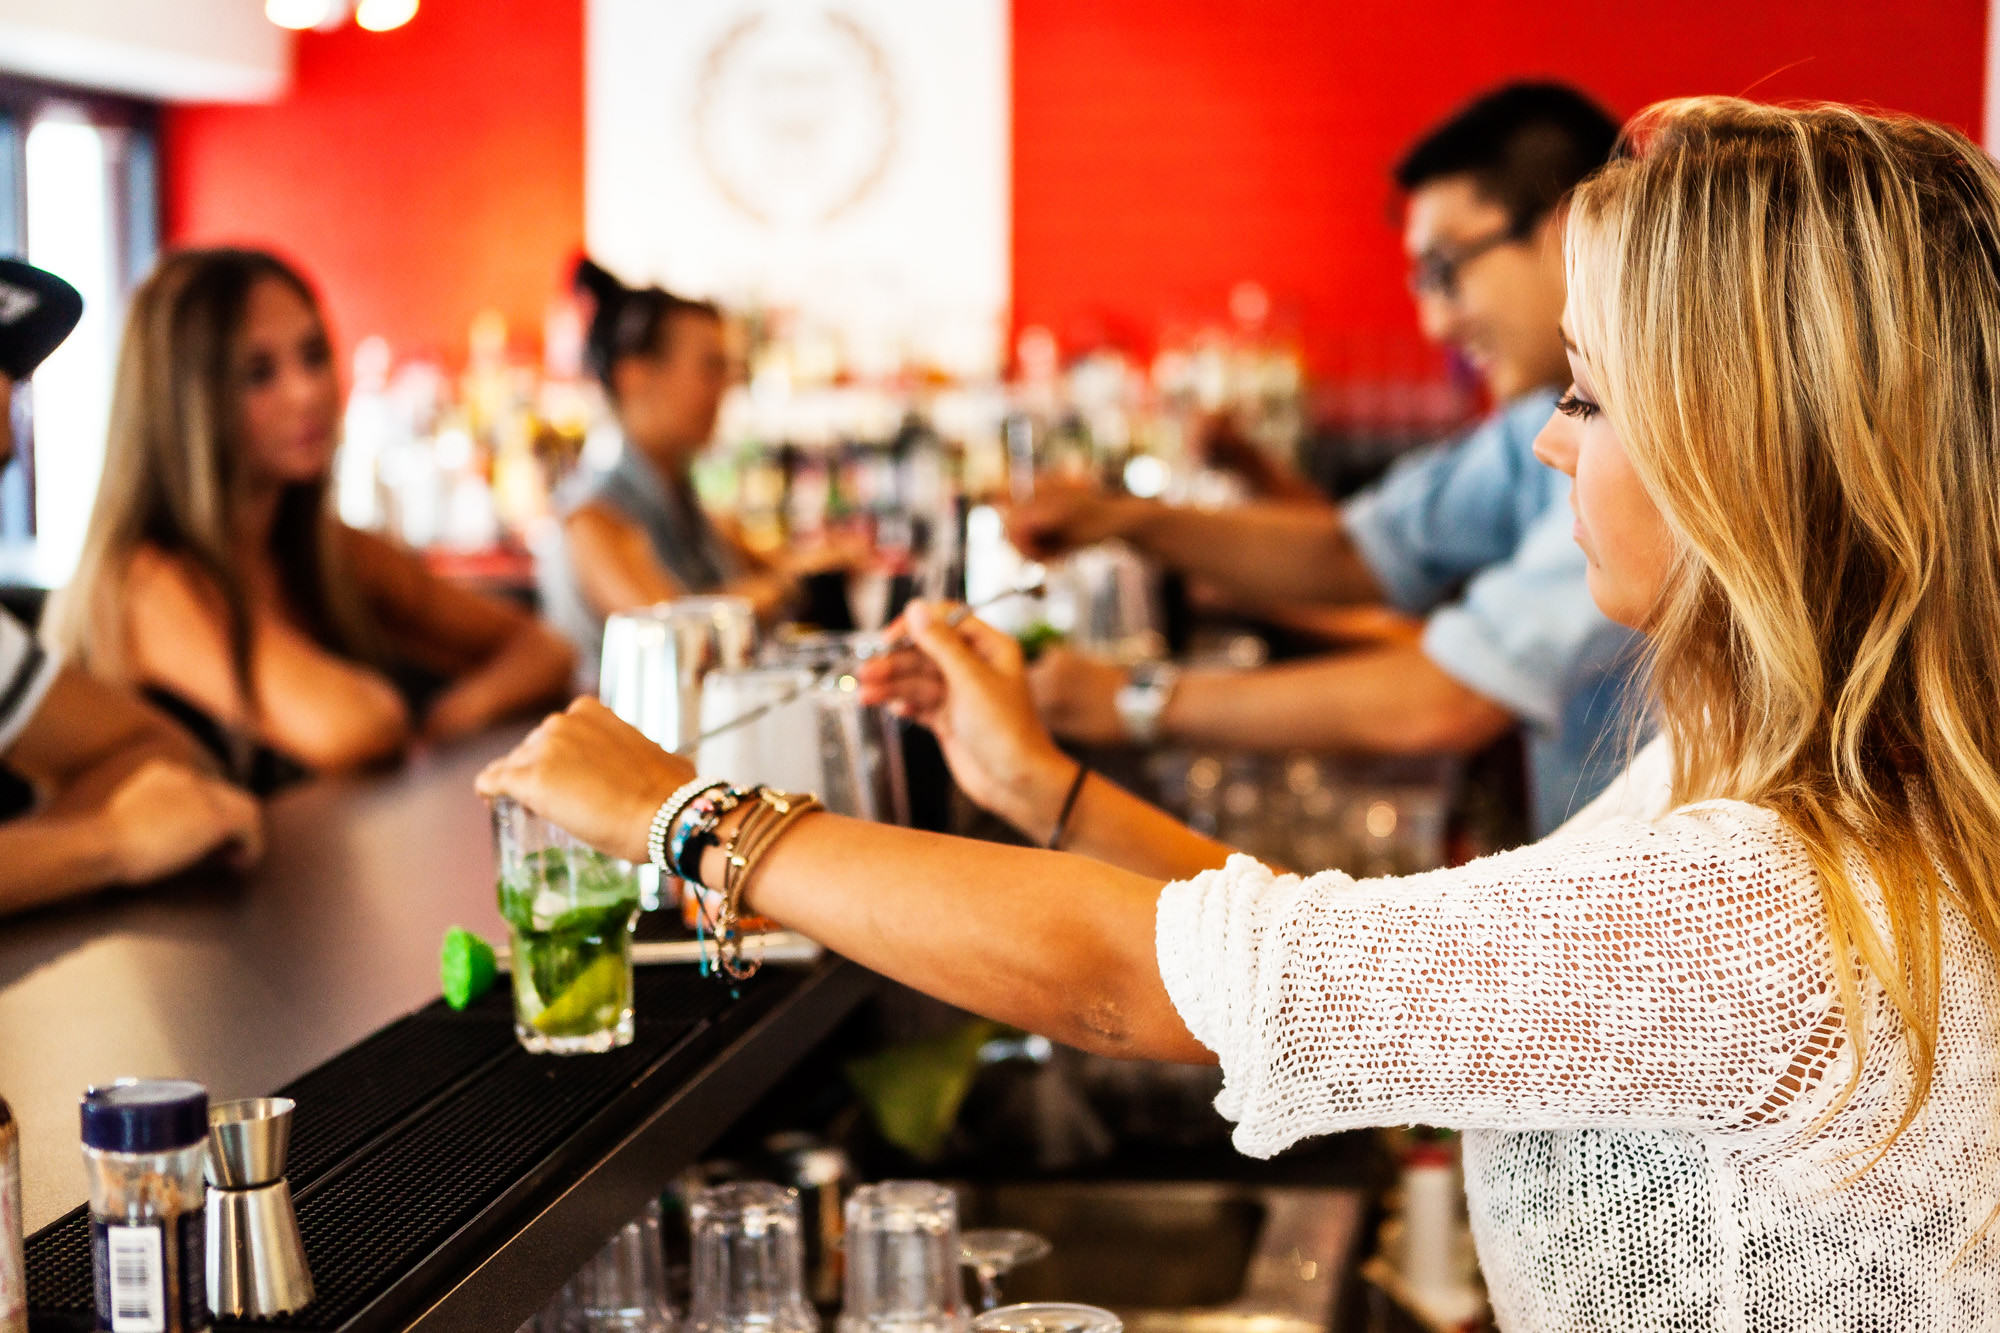 UNILAD barman129 Heres What Bartenders Are Really Thinking About You, Apparently